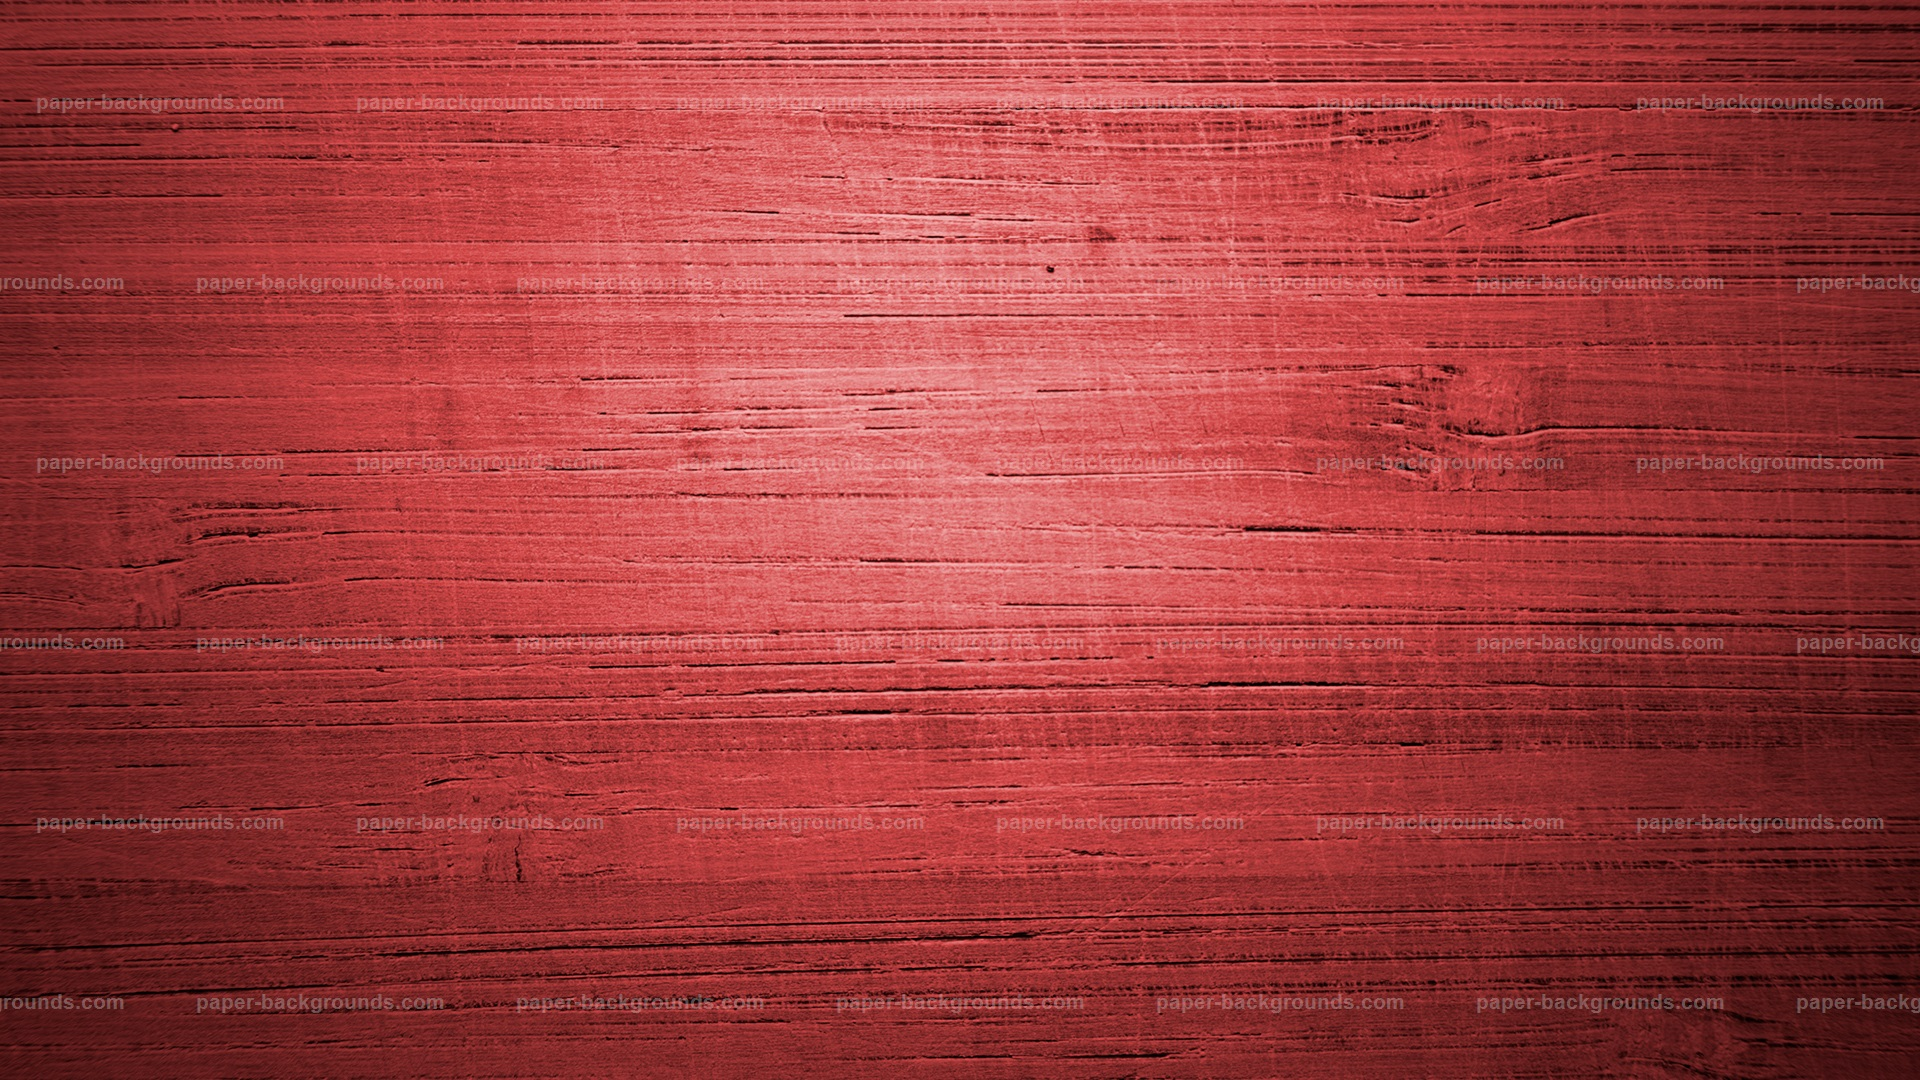 Red Wood Texture Background hd 1920x1080